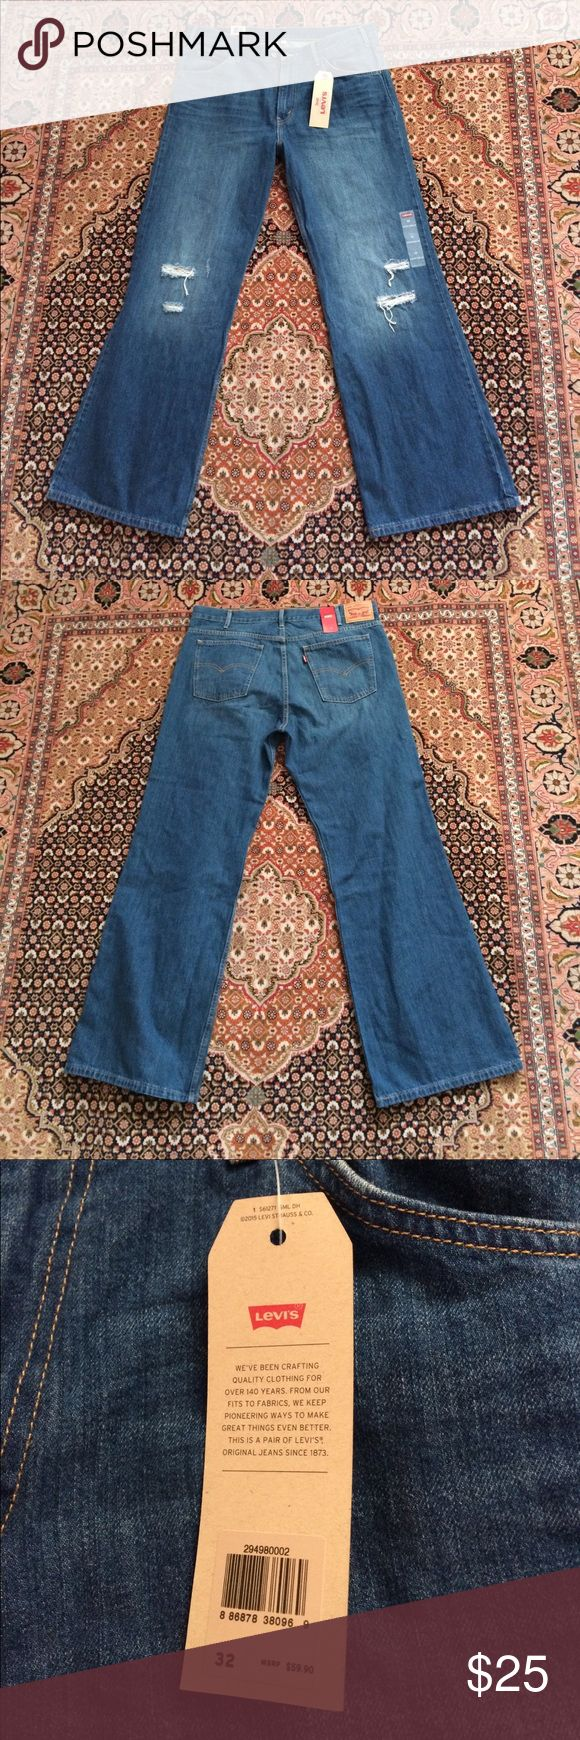 NWT Levi's Vintage Wide Leg Women's Jeans SZ 32 👖 NWT super cute Levi's jeans. Wide leg with holes in the knees. SZ 32 Levi's Jeans Flare & Wide Leg